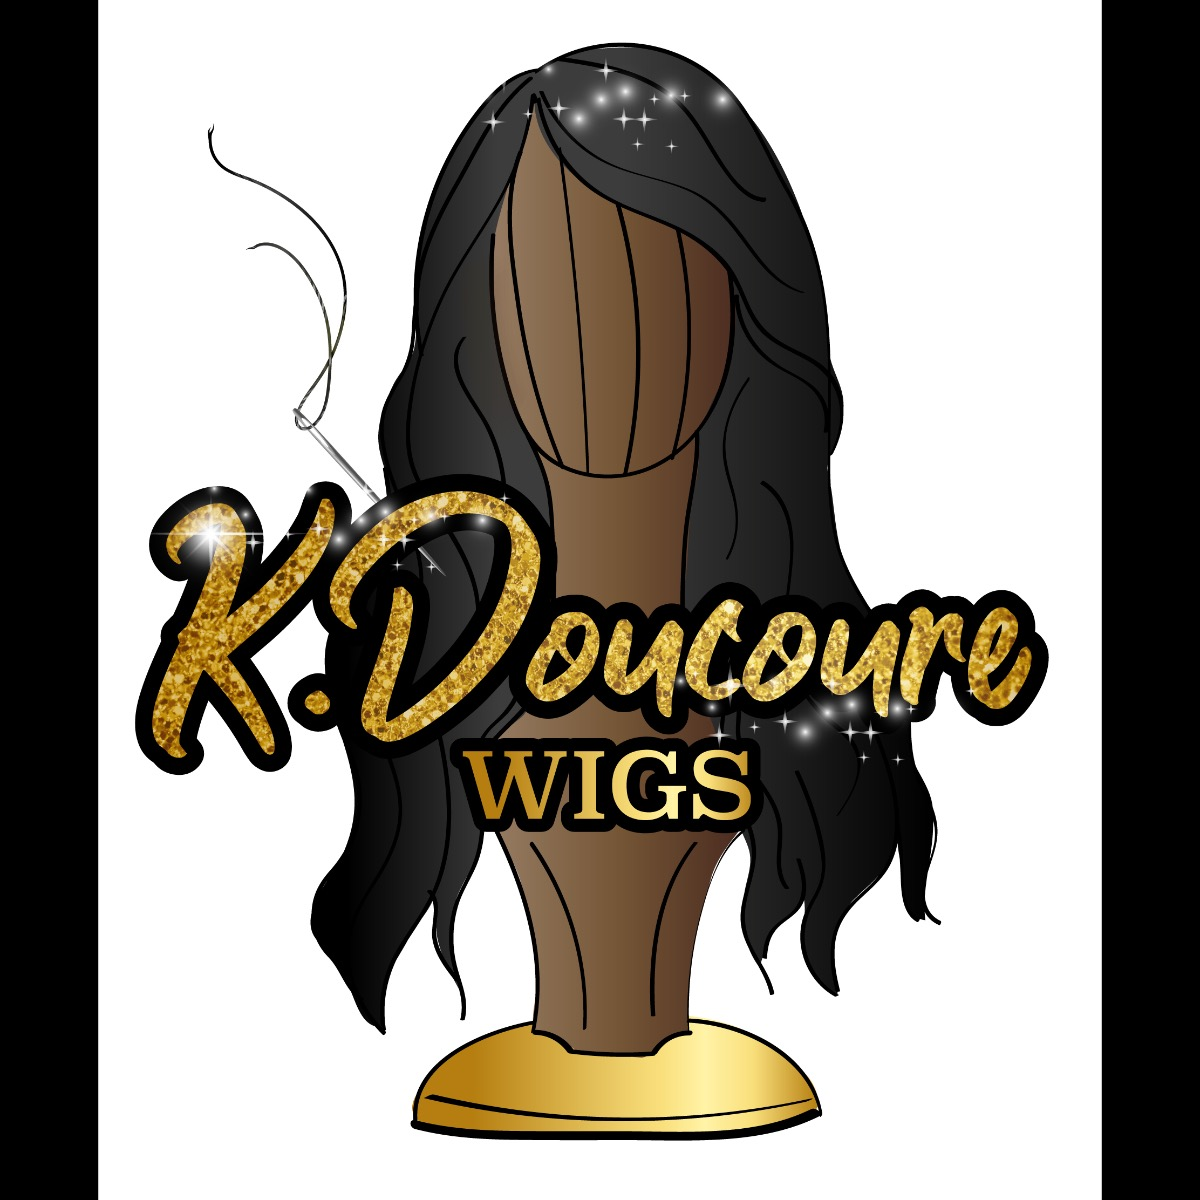 K.Doucoure Wigs Profile Picture